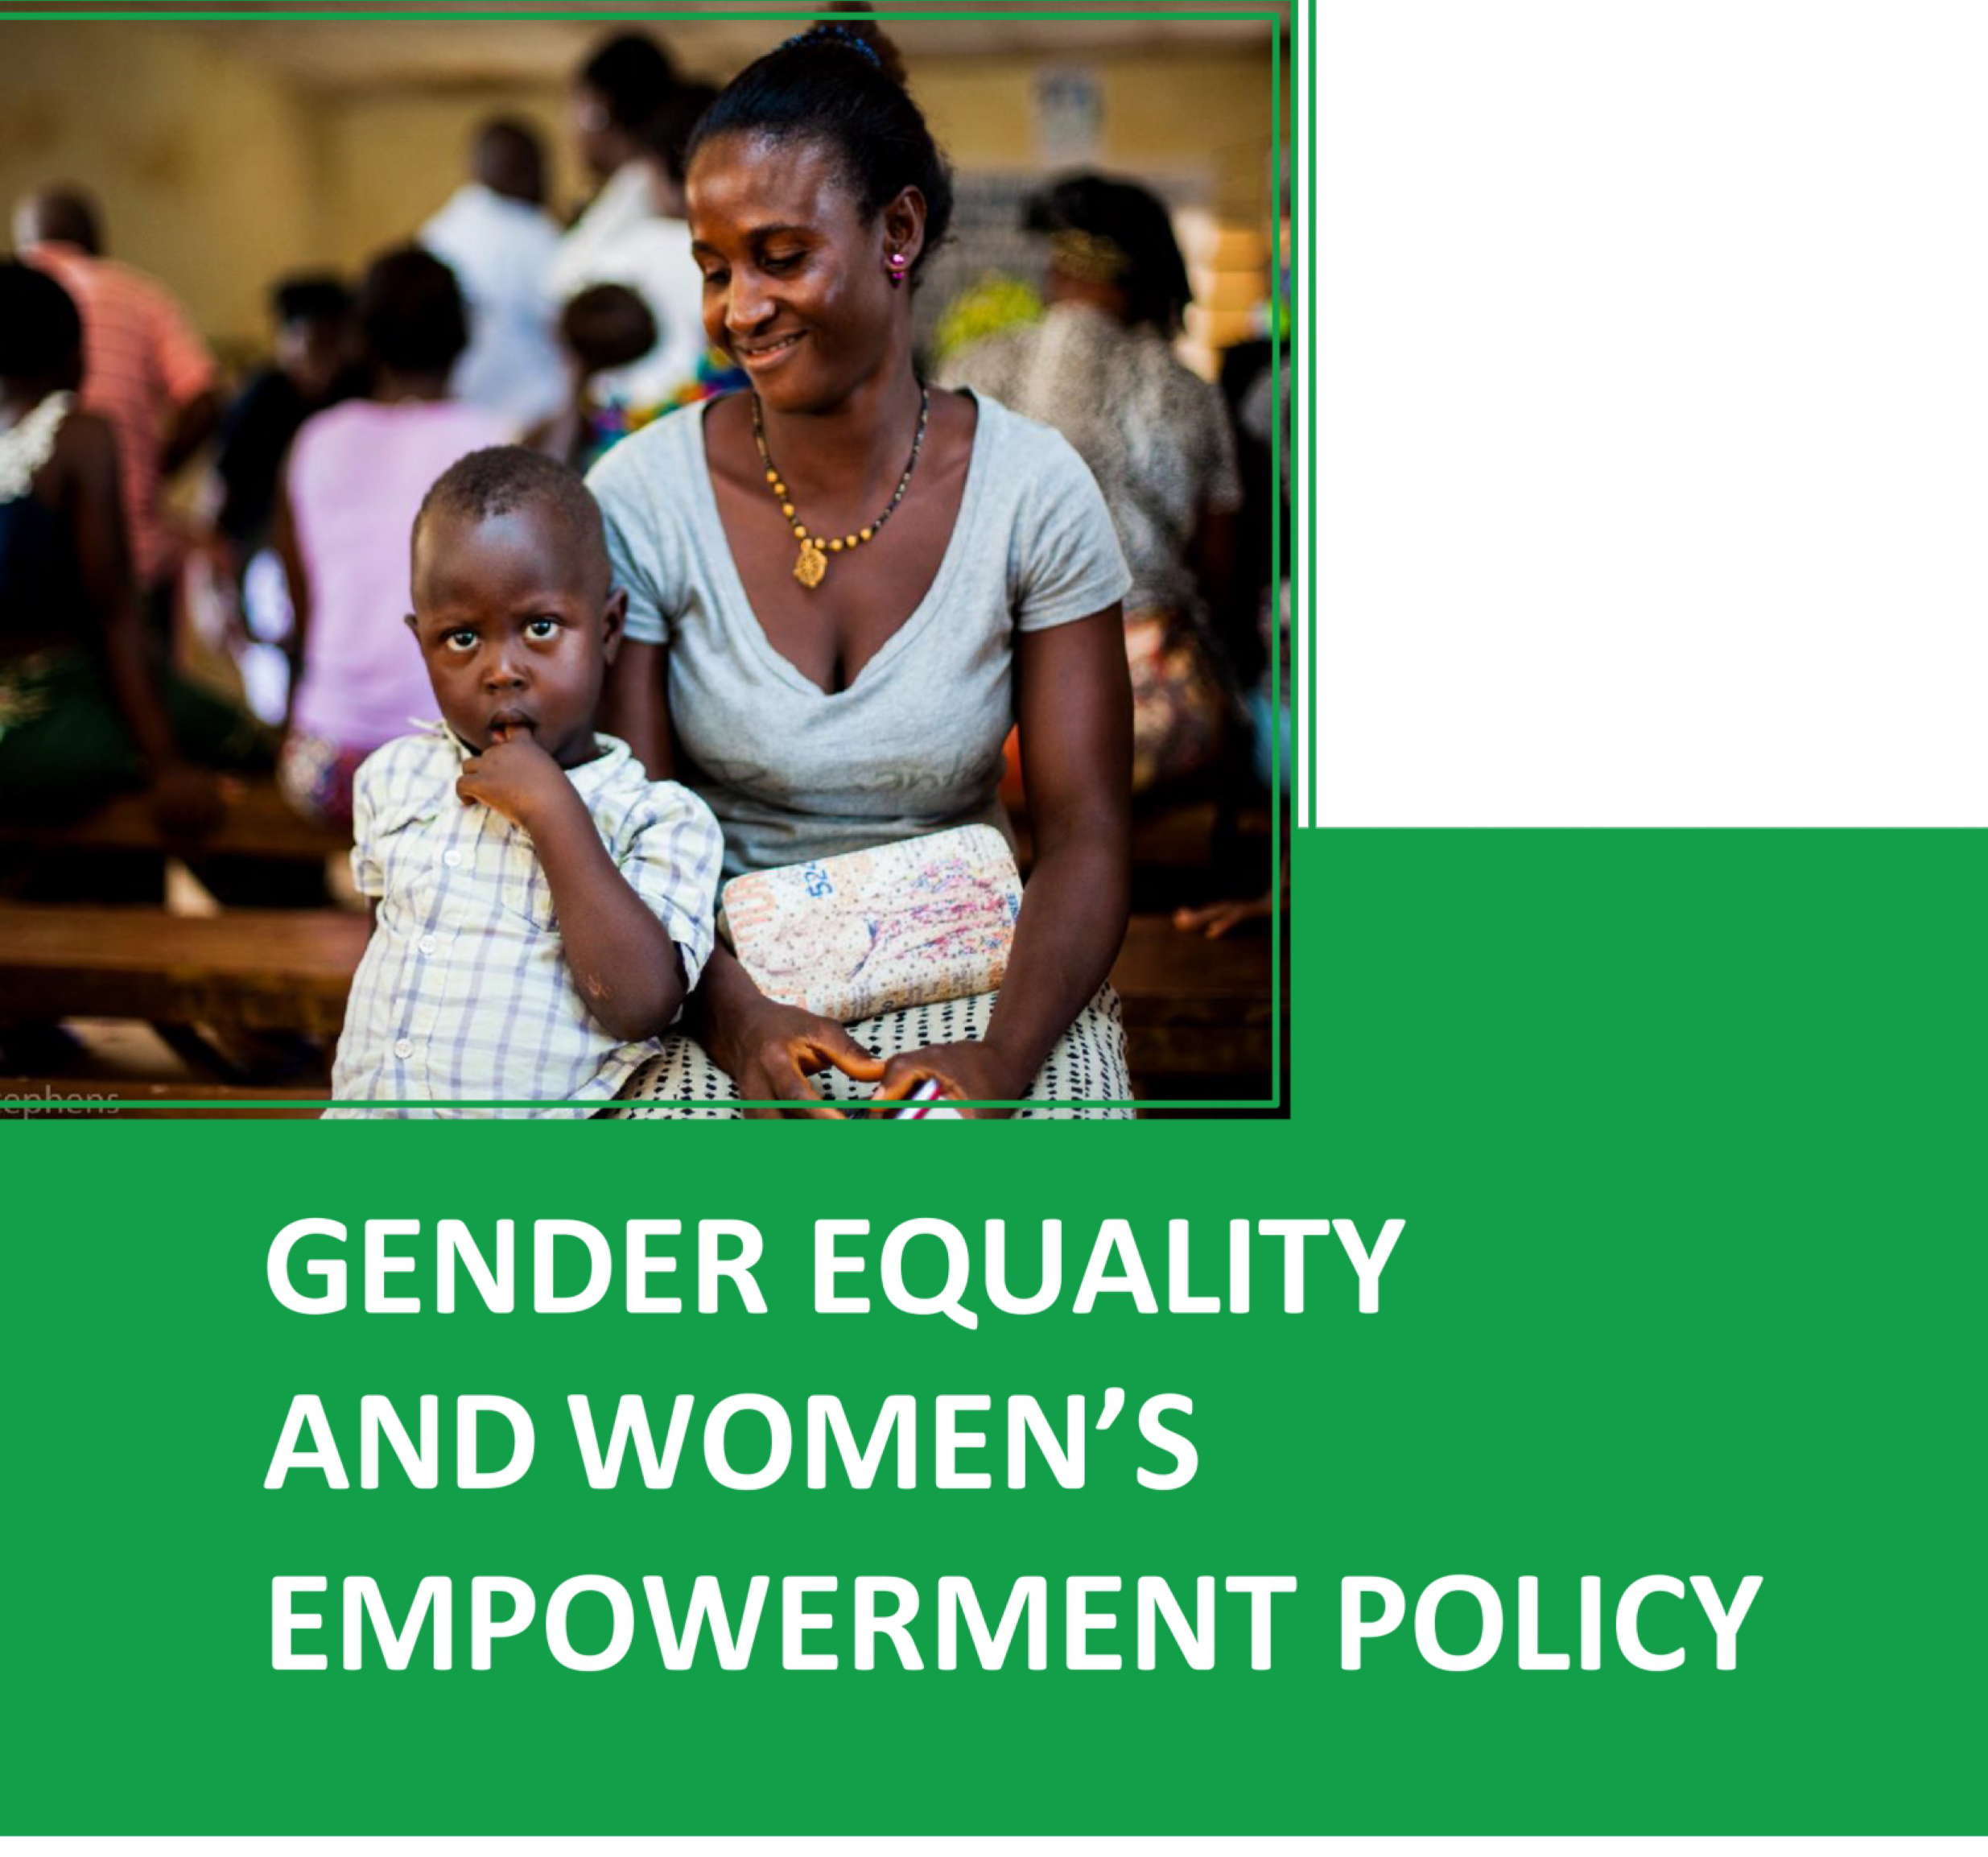 GENDER EQUALITY AND WOMEN'S EMPOWERMENT POLICY